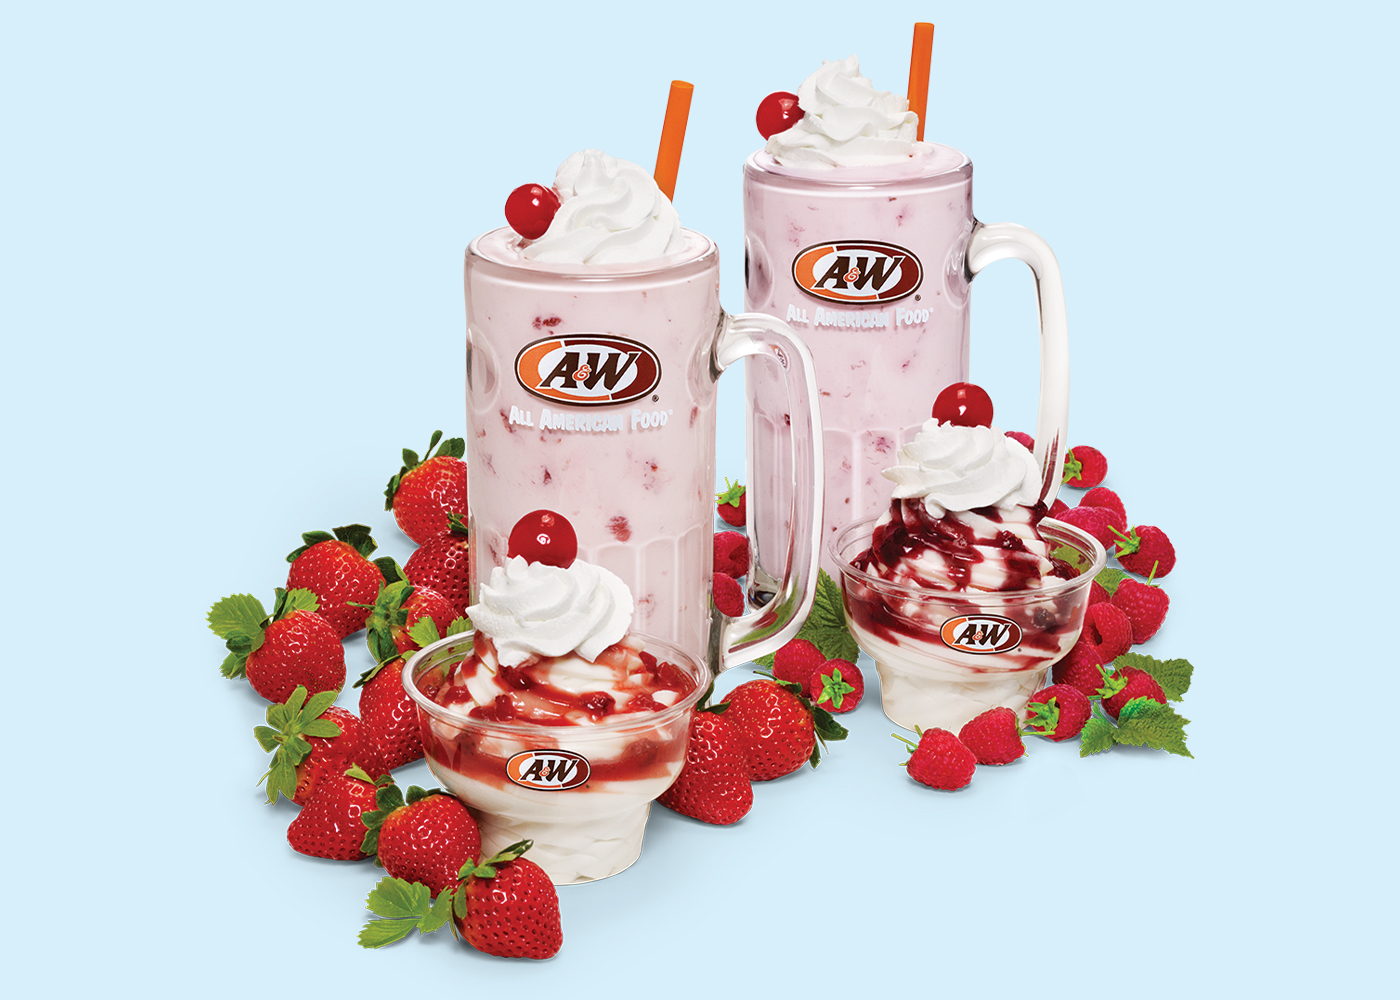 The background is light blue. Photo of a Strawberry Shake and Strawberry Sundae are on the left side of the image surrounded by real strawberries. Photo of a Raspberry Shake and Raspberry Sundae are on the right side of the image surrounded by real raspberries.